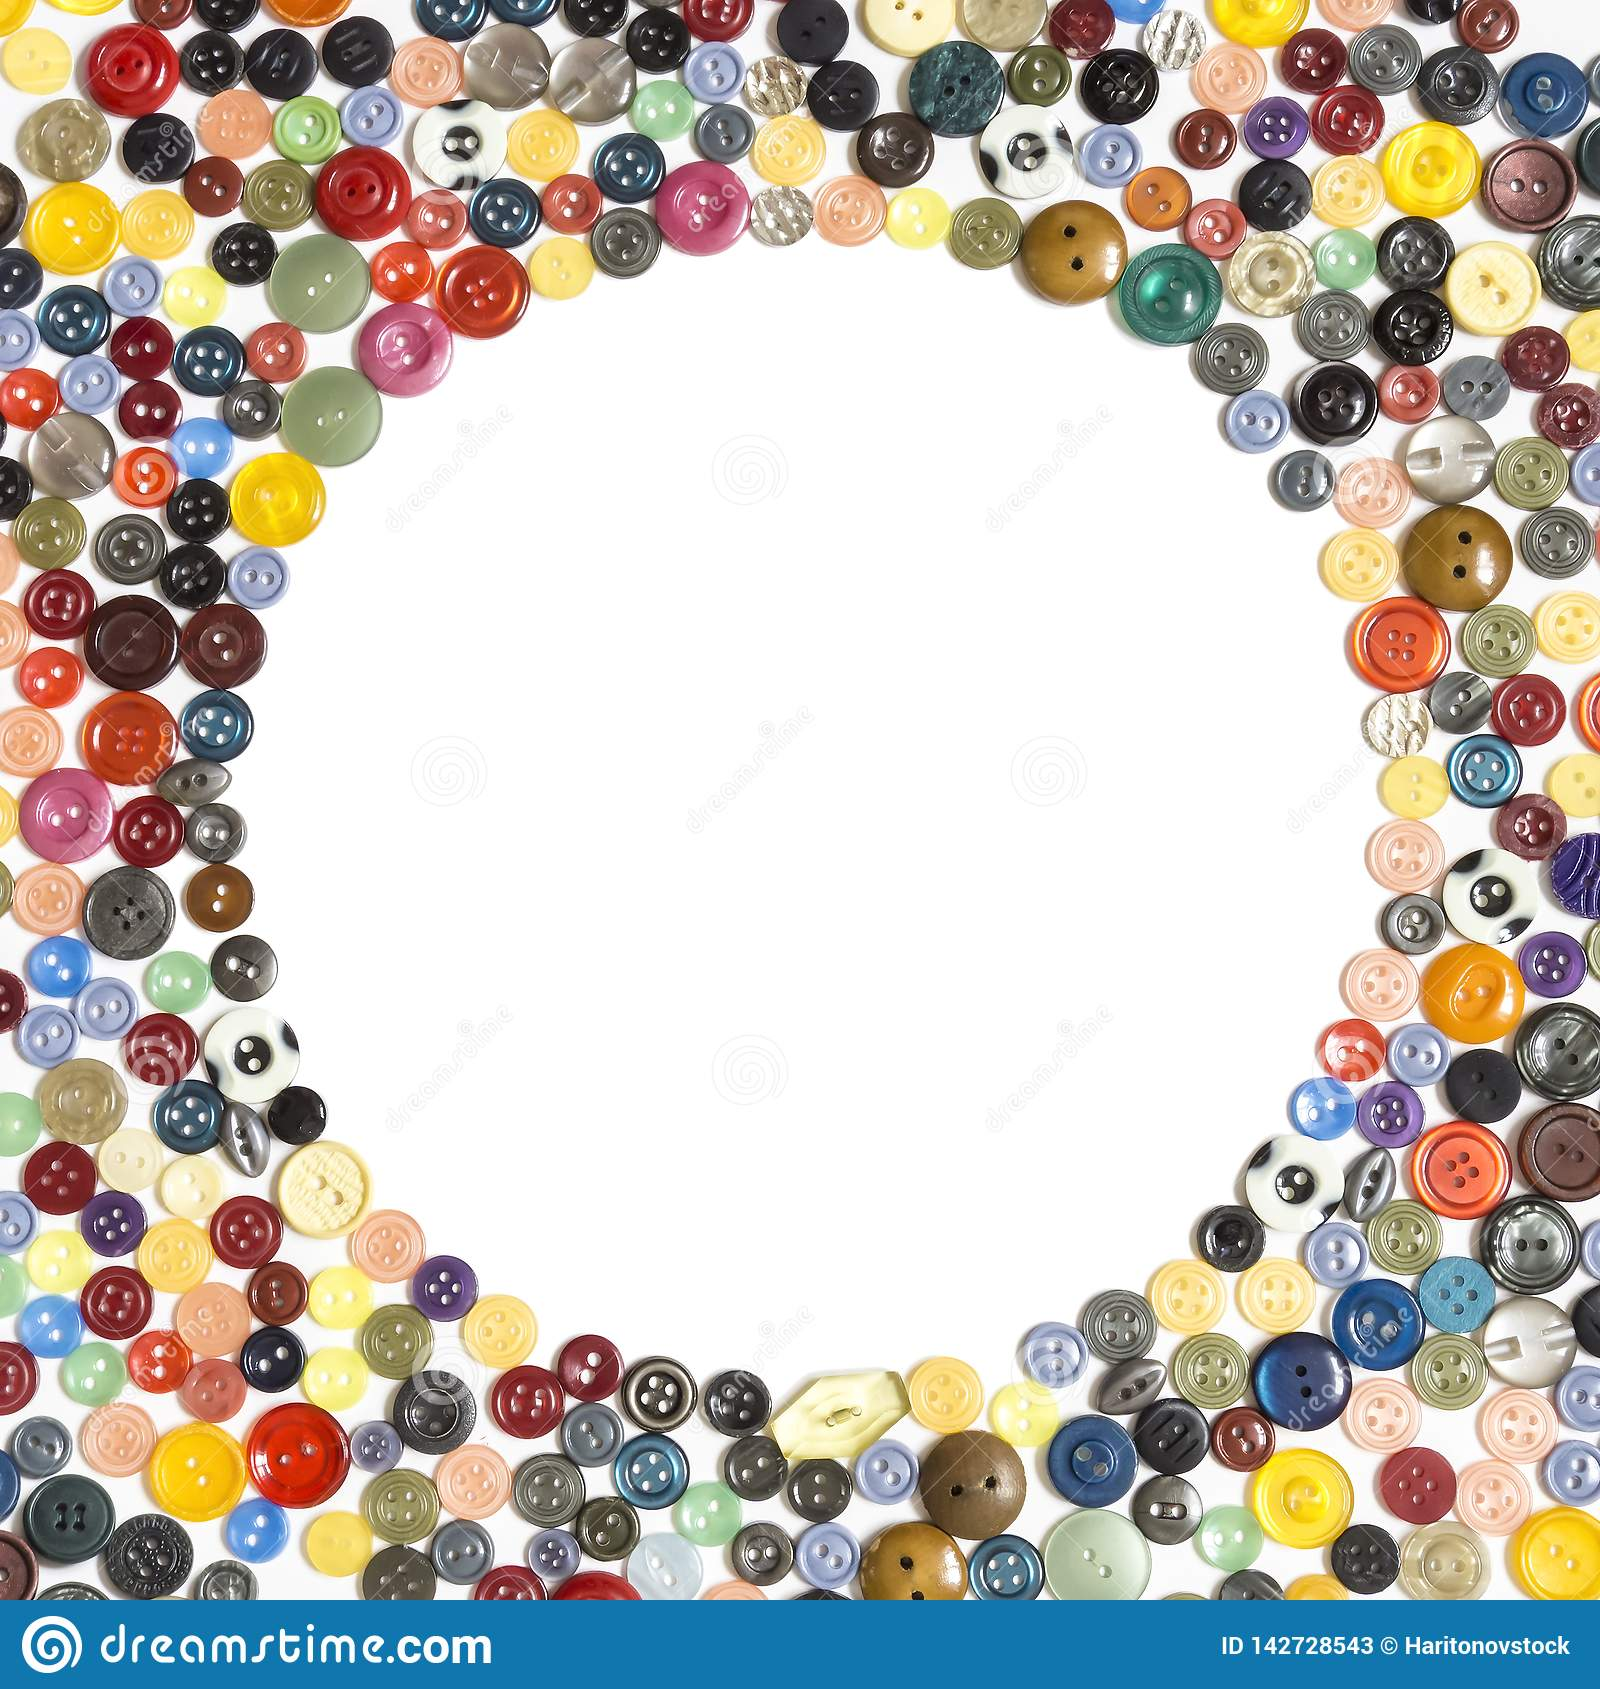 Background with round frame - multicolored buttons on a white surface. Background with round frame - multicolored plain buttons chaotically arranged on a white stock photos